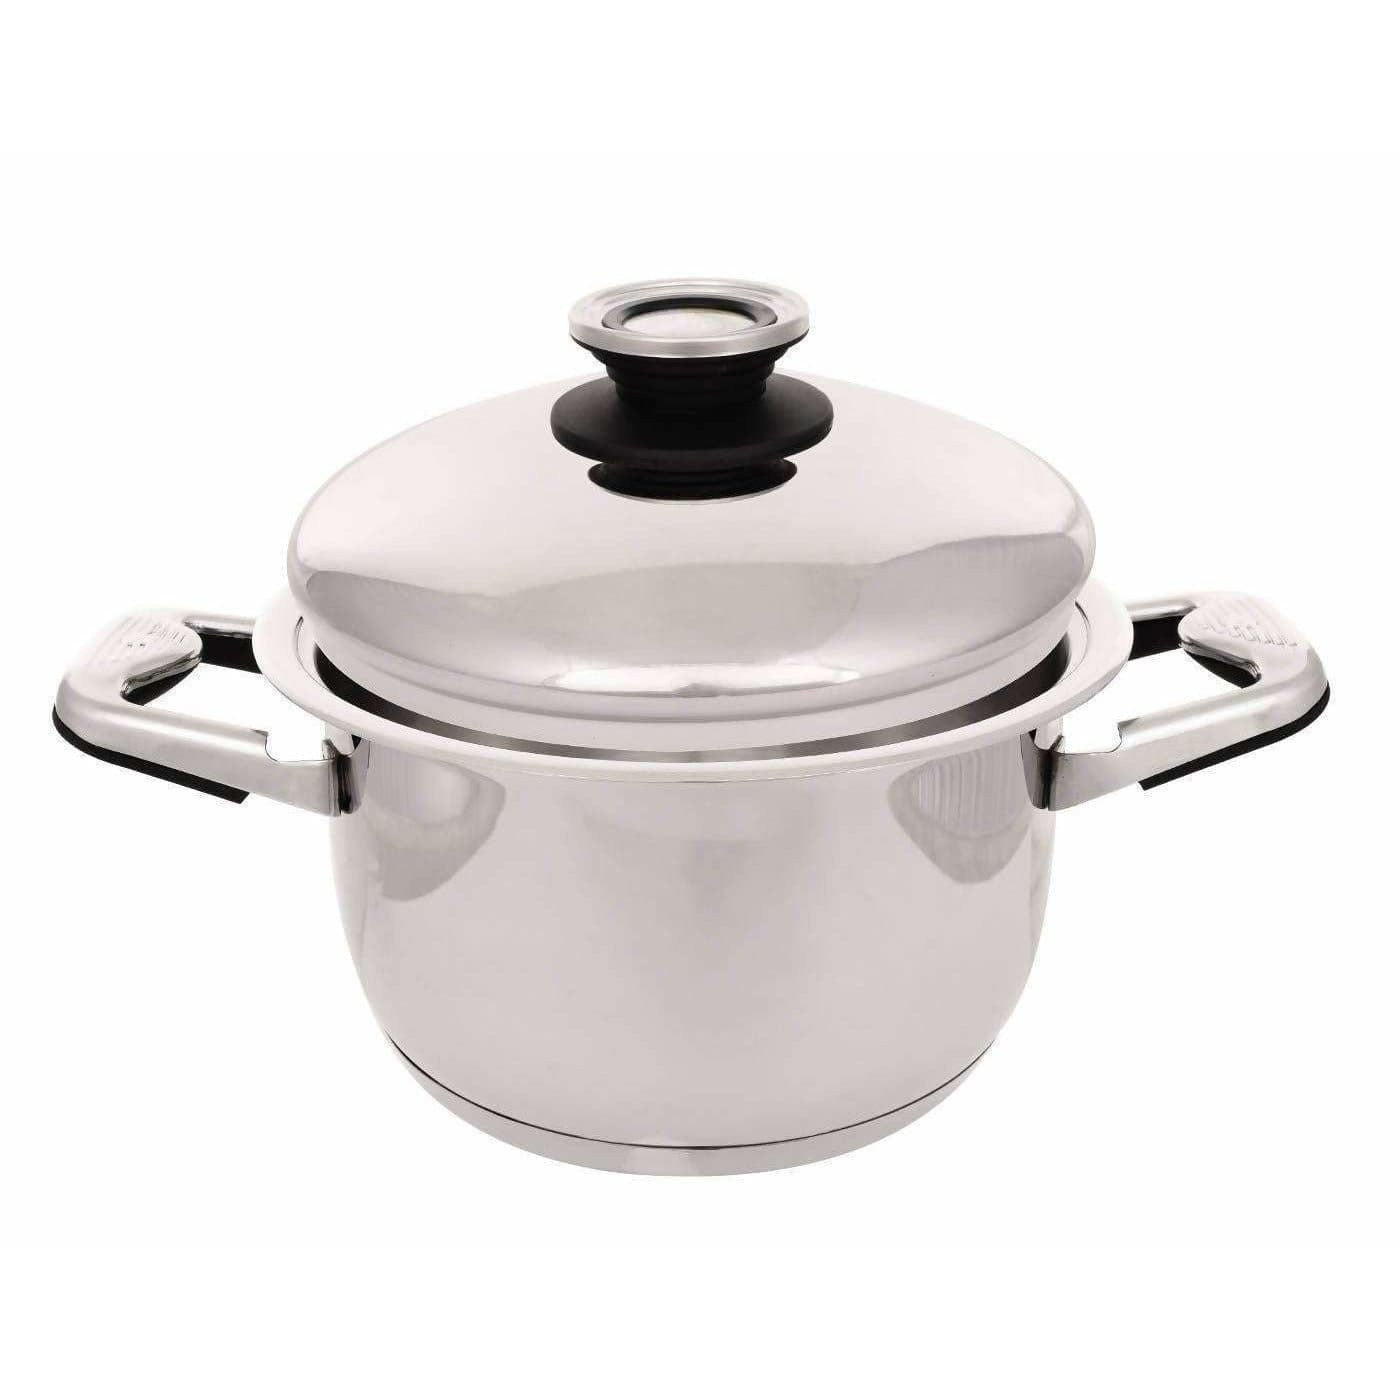 Nutricook - High grade SS 316L Cookware Oil Less & Water Less Sauce Pot with Lid 3.2 Litre 20 cm dia